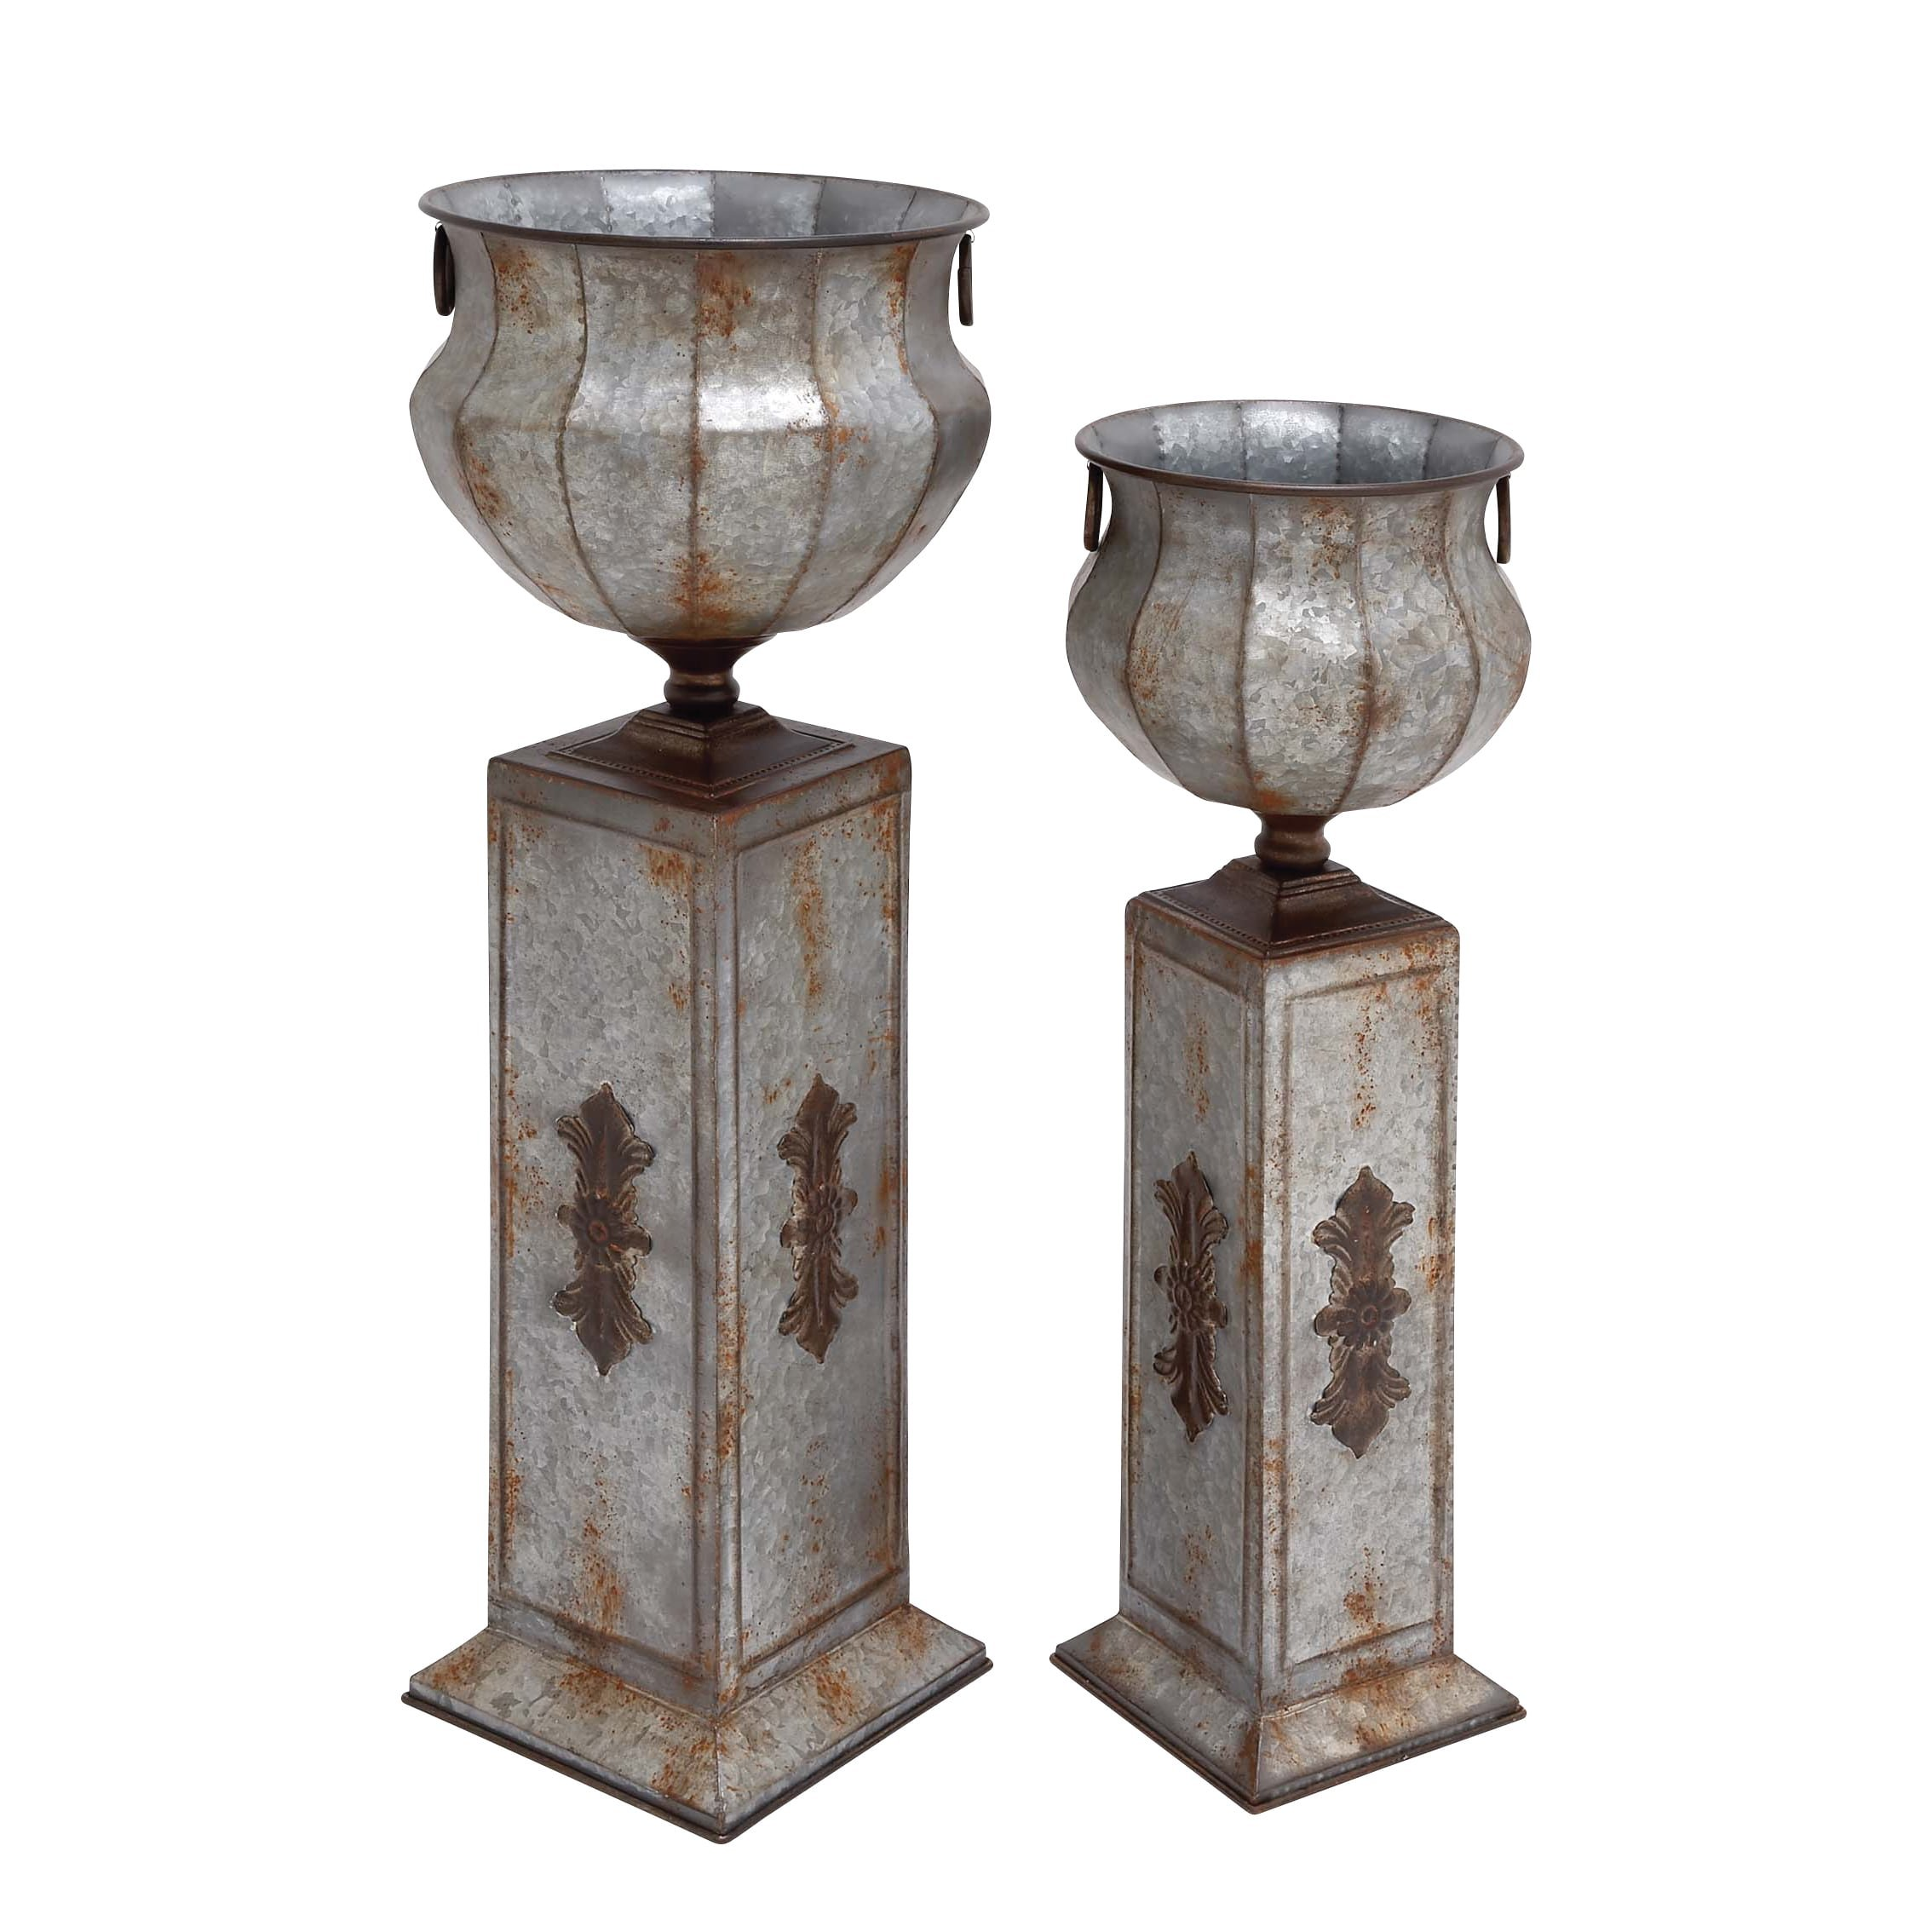 Studio 350 34-inch Metal Pedestal Urn (Set of 2) by Studio 1212